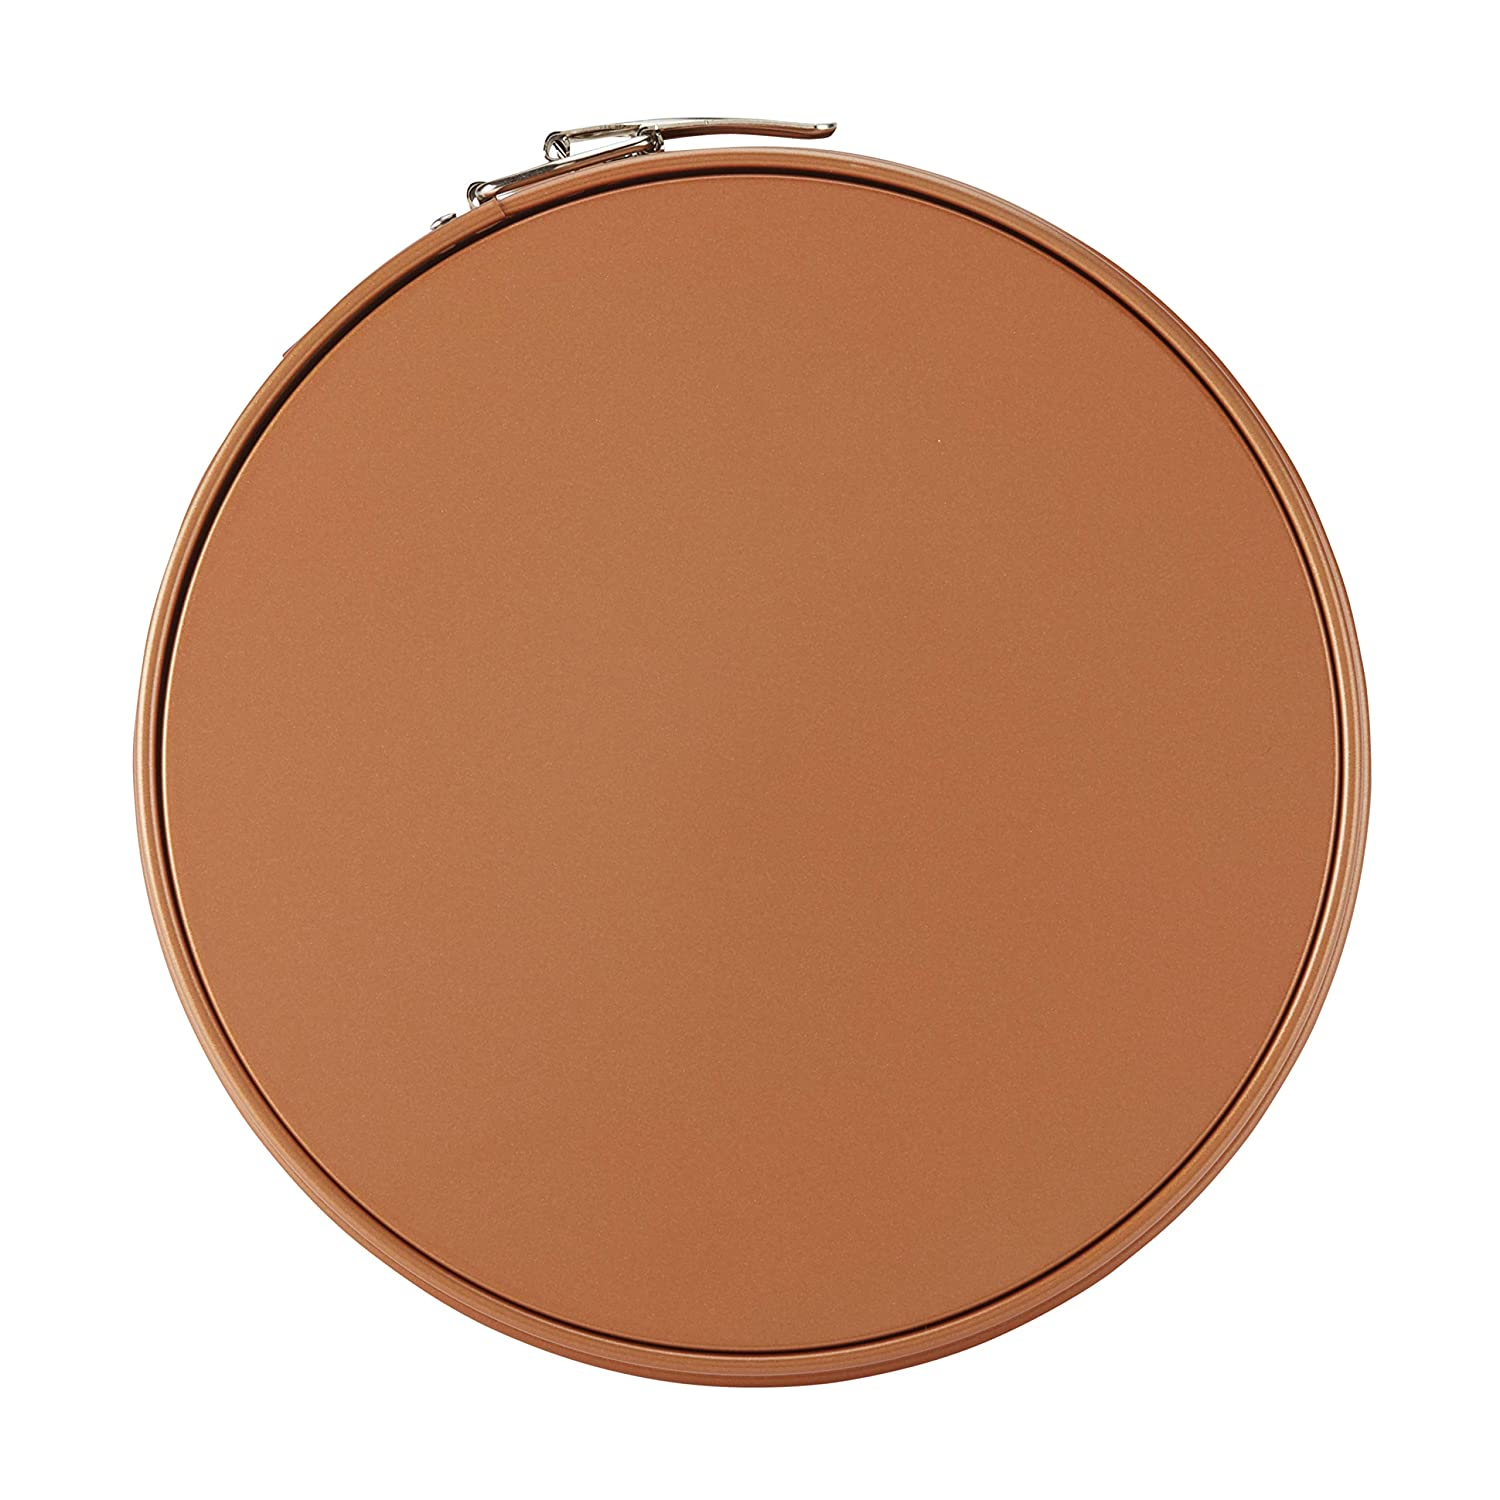 Copper Round Ayesha Curry 47706 Nonstick Bakeware Nonstick Springform Baking Pan//Nonstick Springform Cake Pan//Nonstick Cheesecake Pan 9 Inch